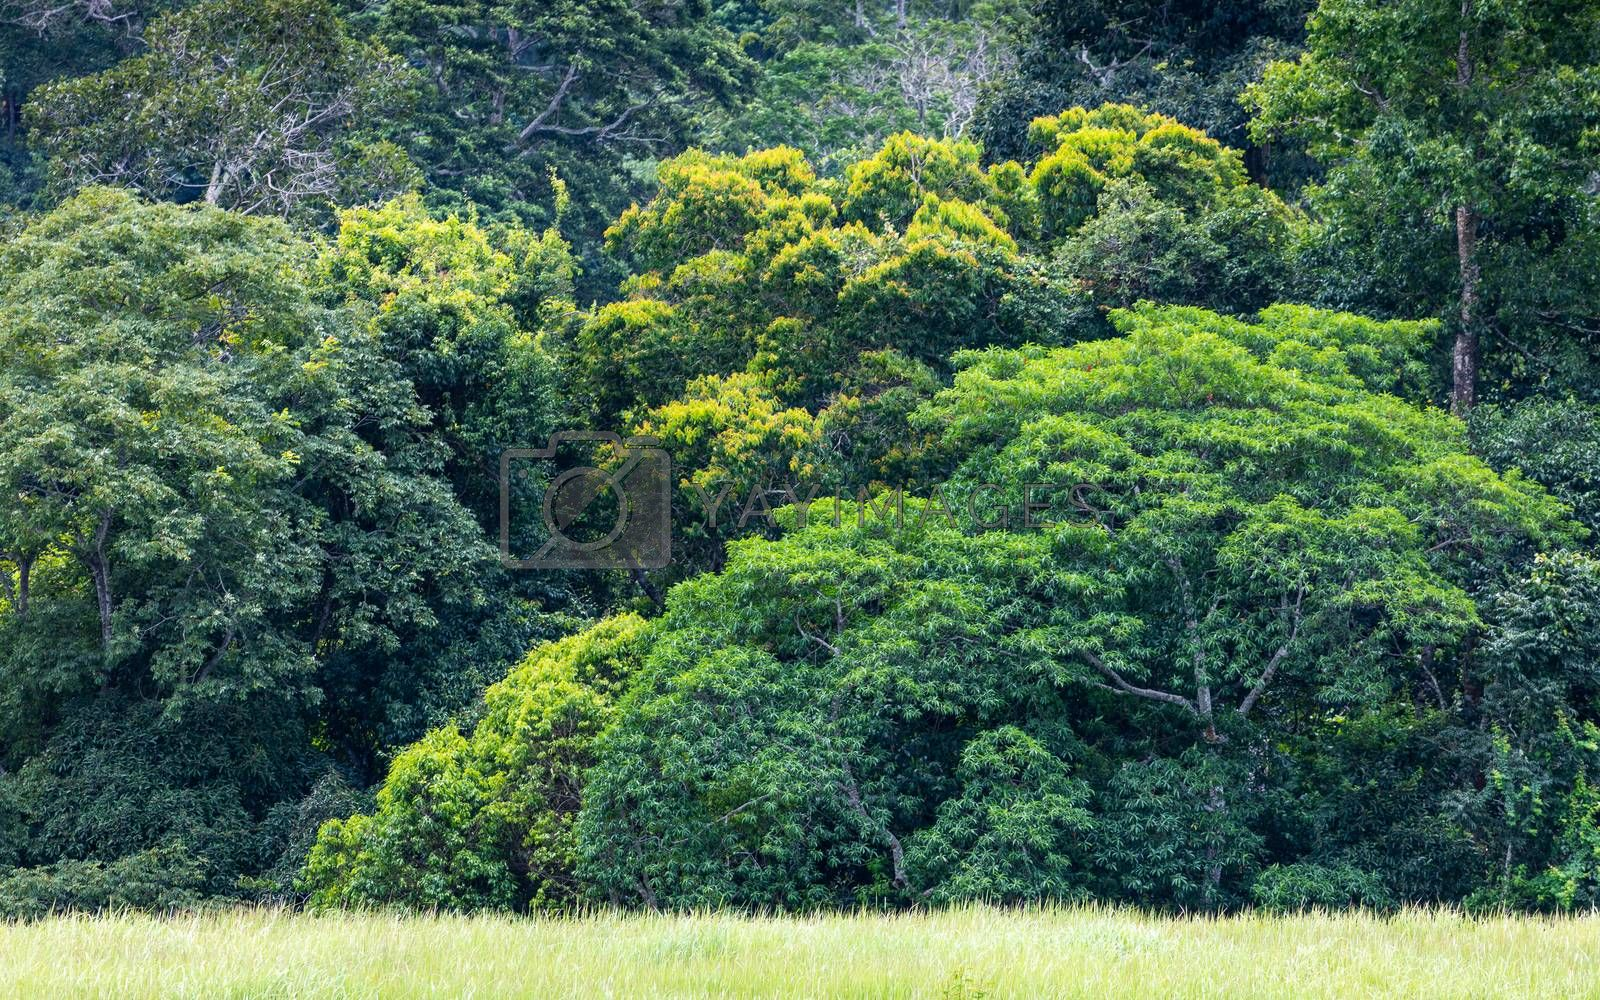 Landscape of green trees and bushes growing inside tropical rainforest.